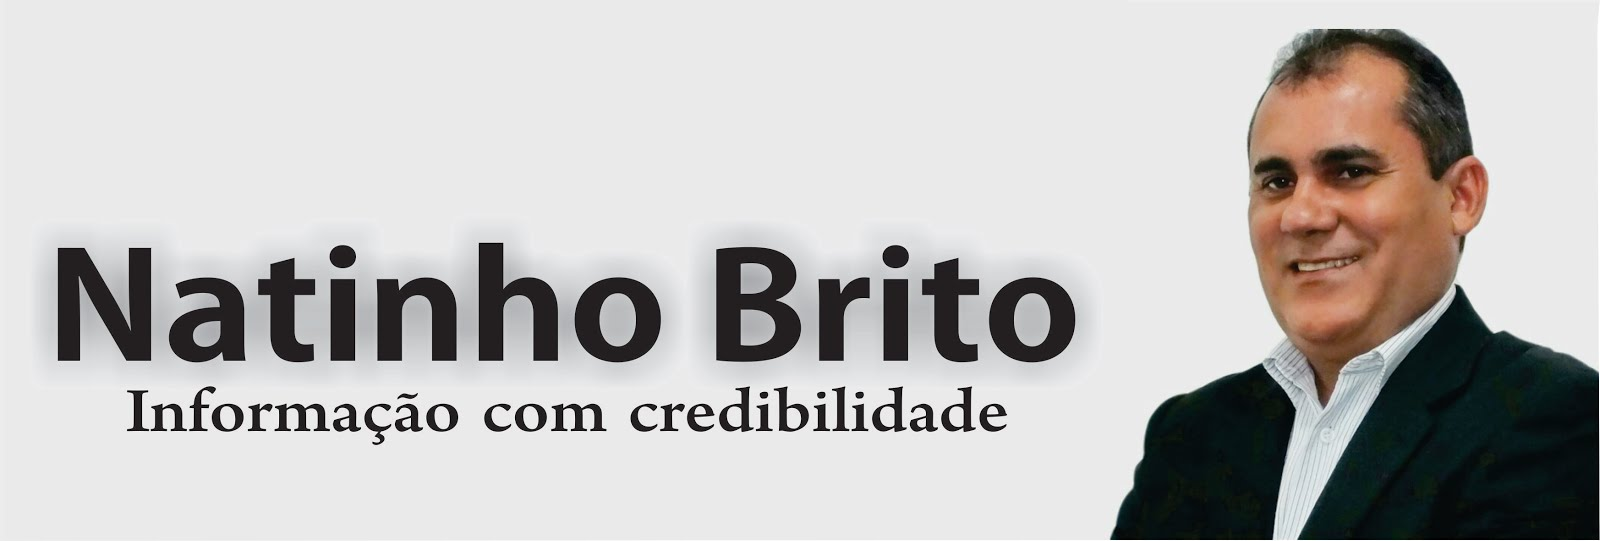 Blog do Natinho Brito